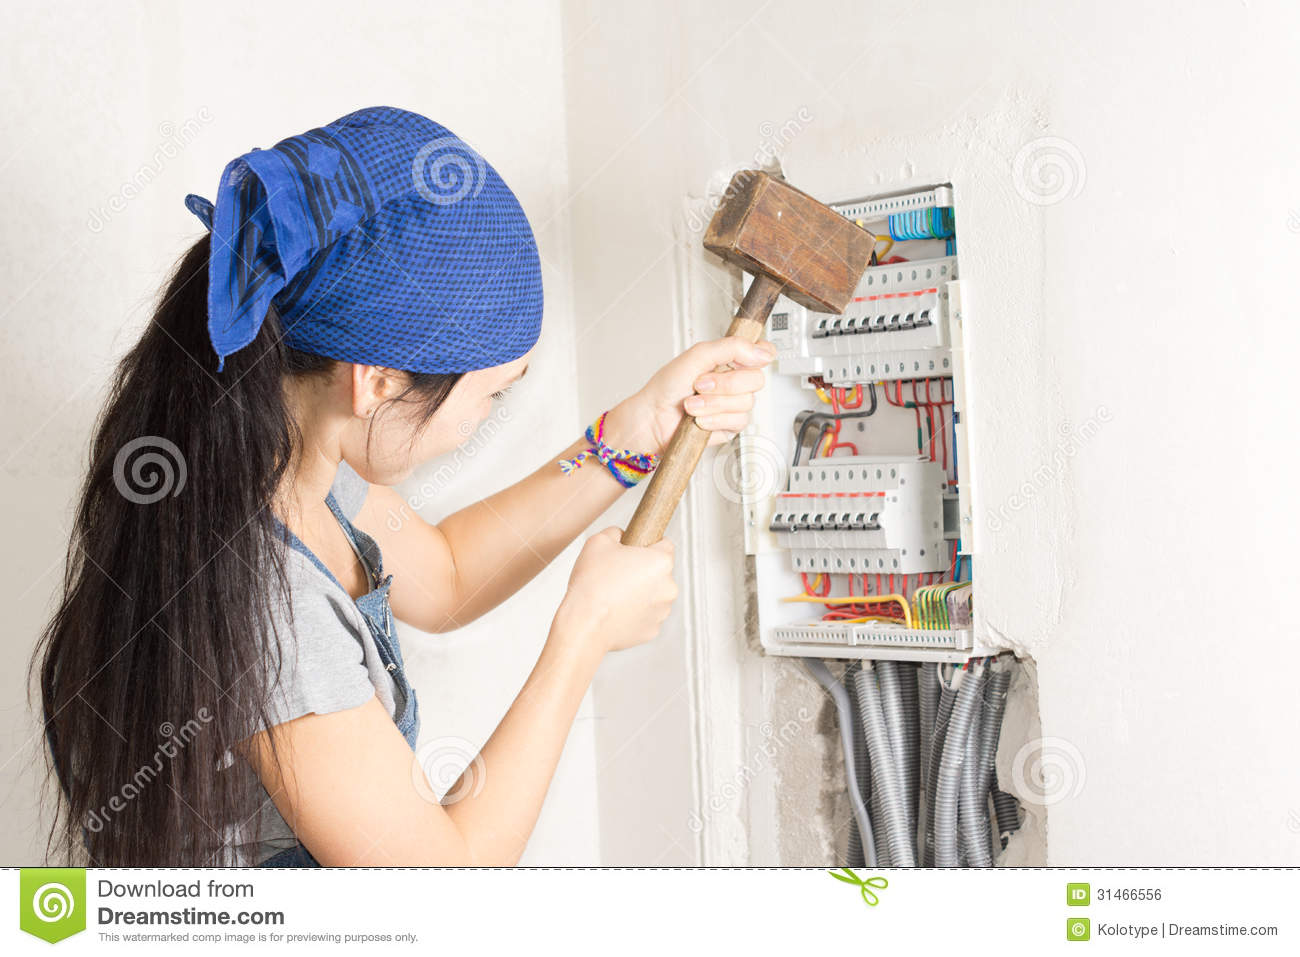 woman taking aim electrical fuse box large wooden mallet effort to solve her supply problems 31466556 woman taking aim at an electrical fuse box royalty free stock how to open a home fuse box at reclaimingppi.co